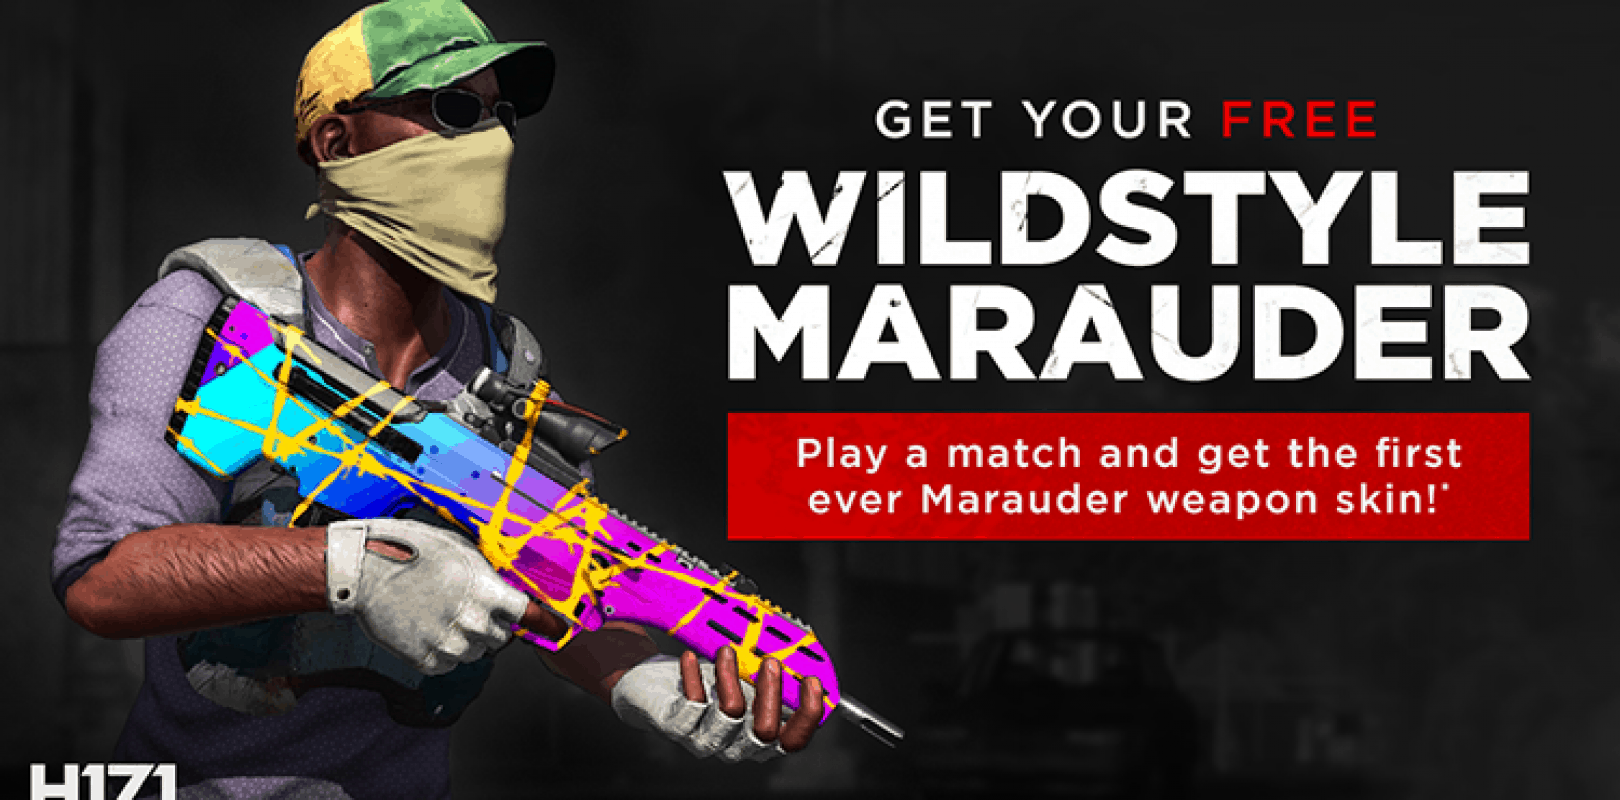 H1Z1 - How to Get Free Skin | WILDSTYLE MARAUDER - All Patch